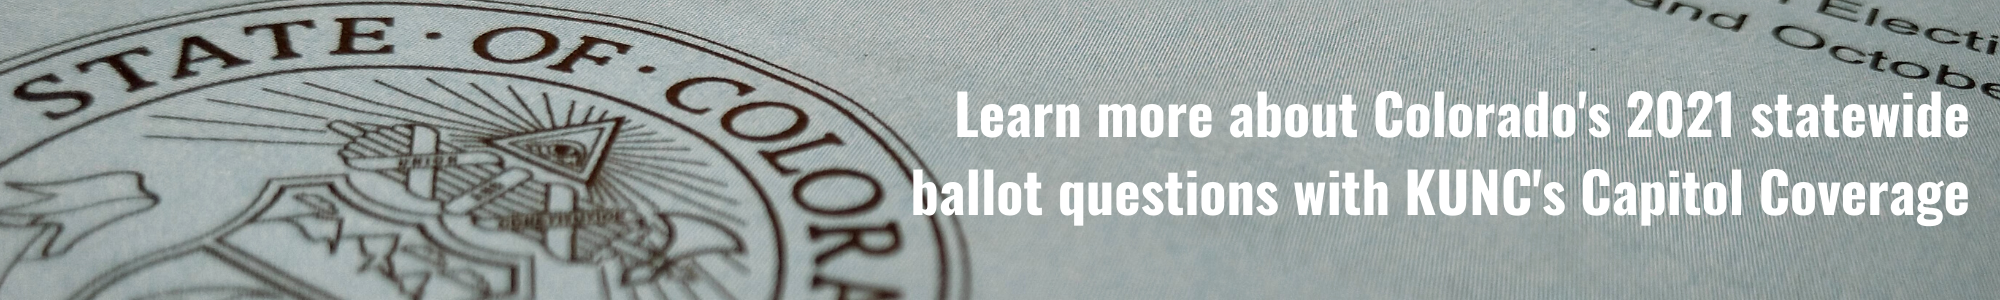 Learn more about Colorado's 2021 statewide ballot questions with KUNC's Capitol Coverage